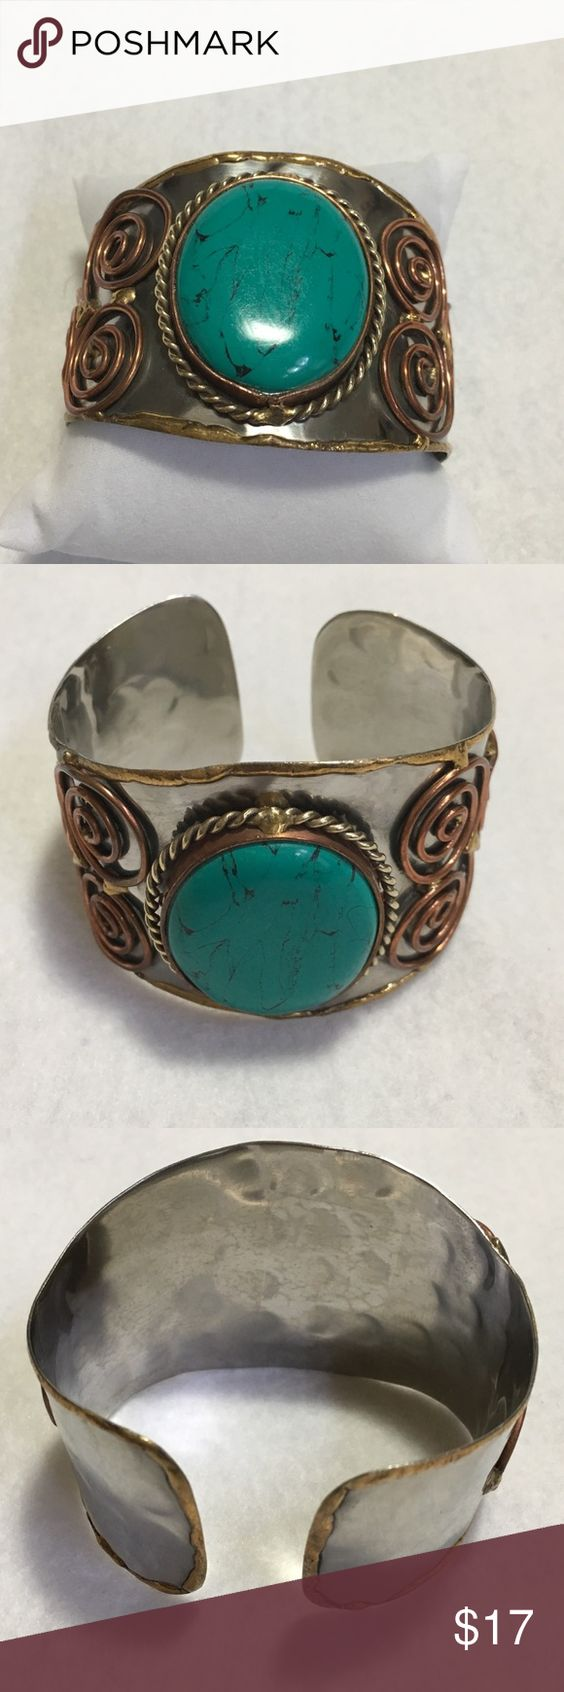 Large Turquoise Cuff with Copper and Brass Large Turquoise Cuff with Copper and Brass Jewelry Bracelets